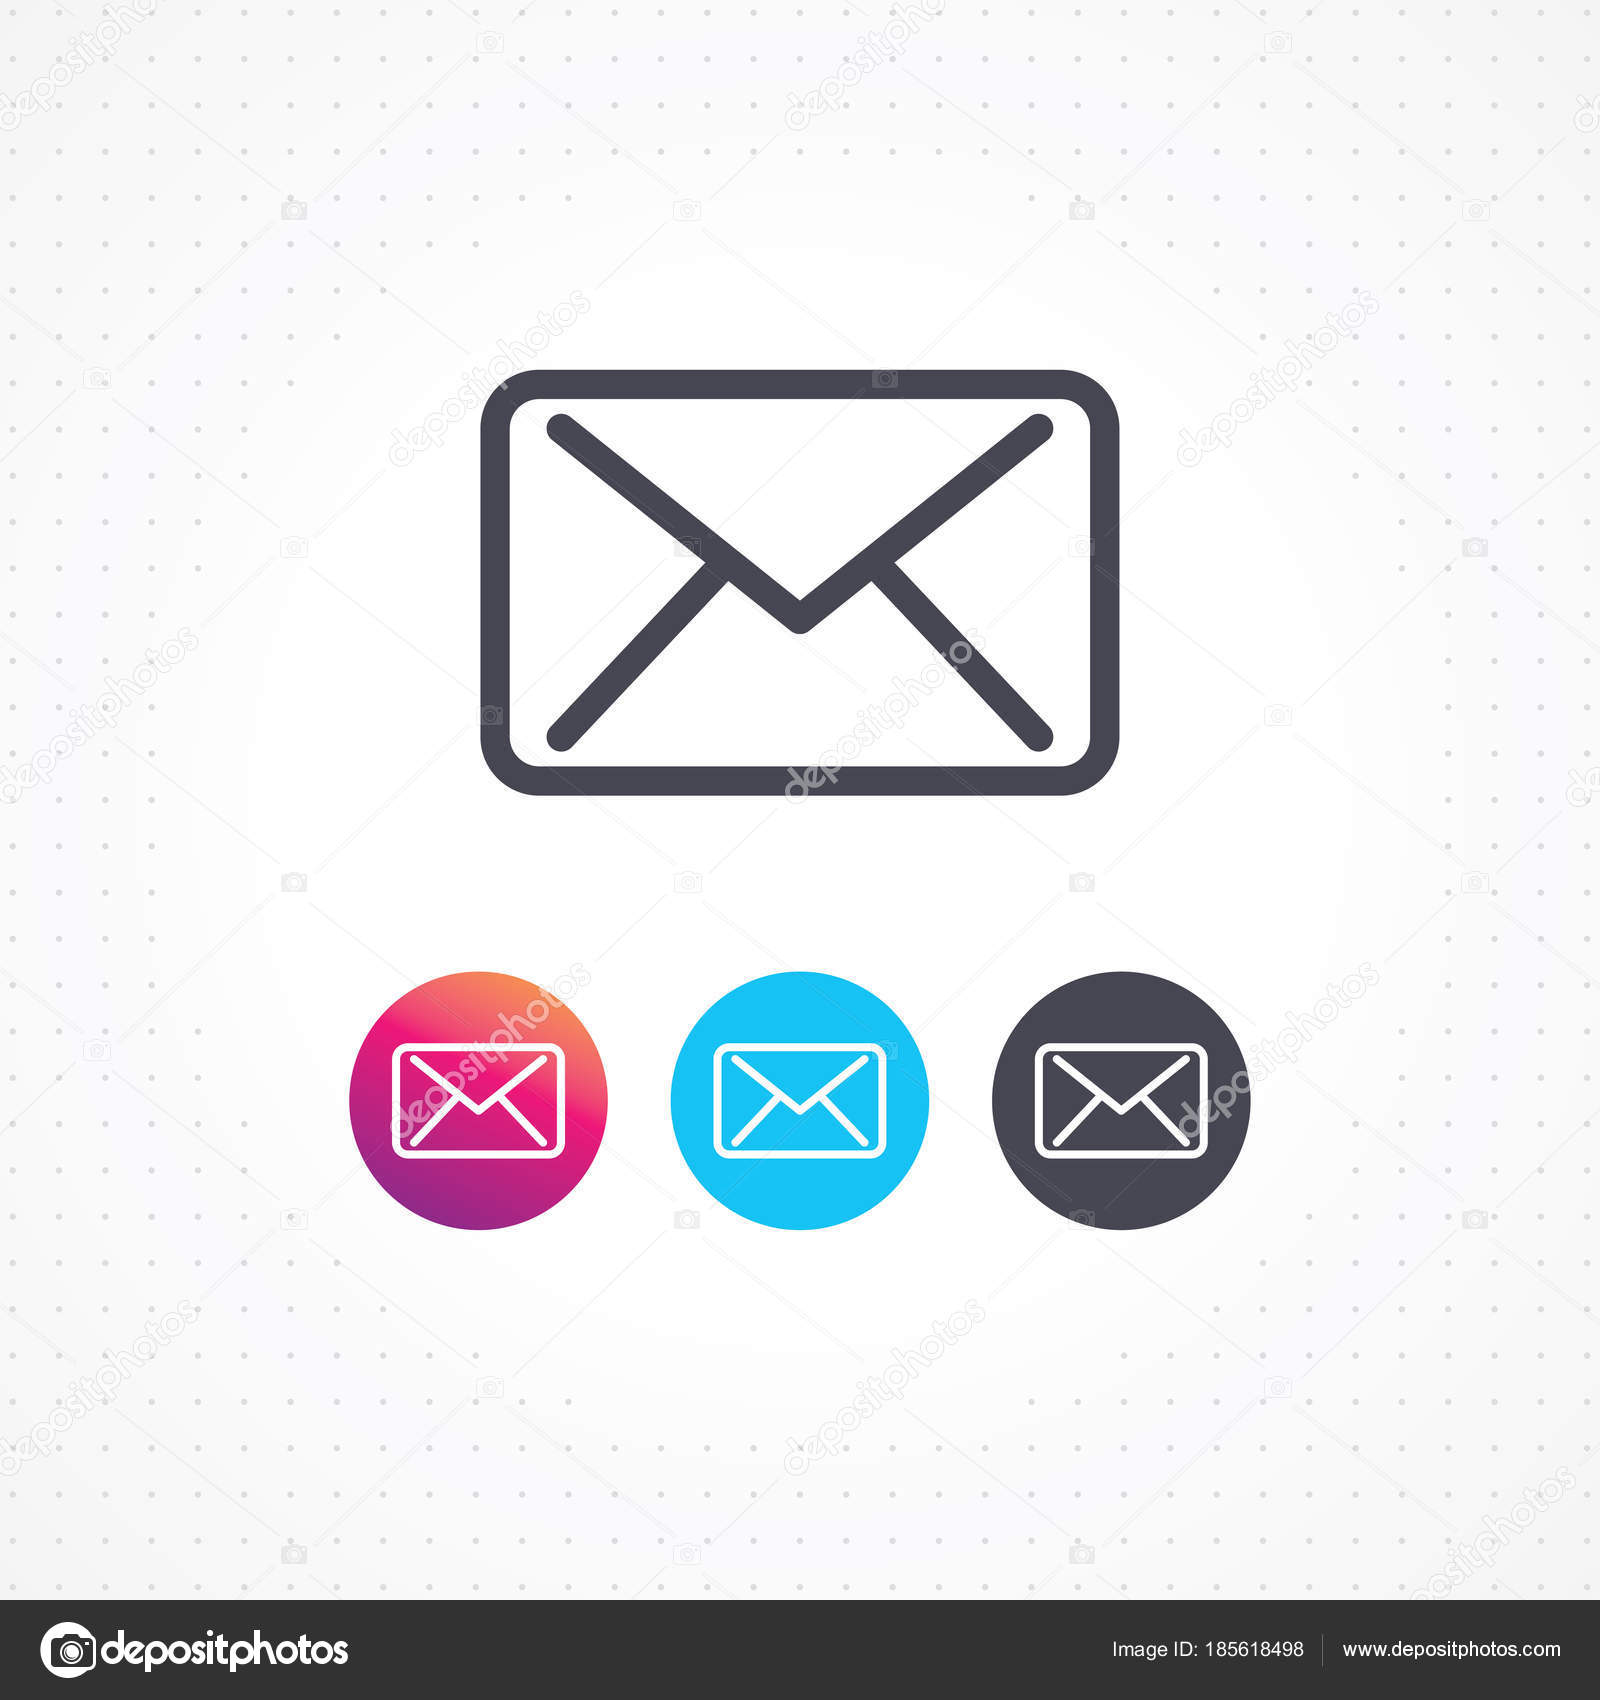 Email icon white background outline email icon business cards email icon white background outline email icon business cards websites stock vector colourmoves